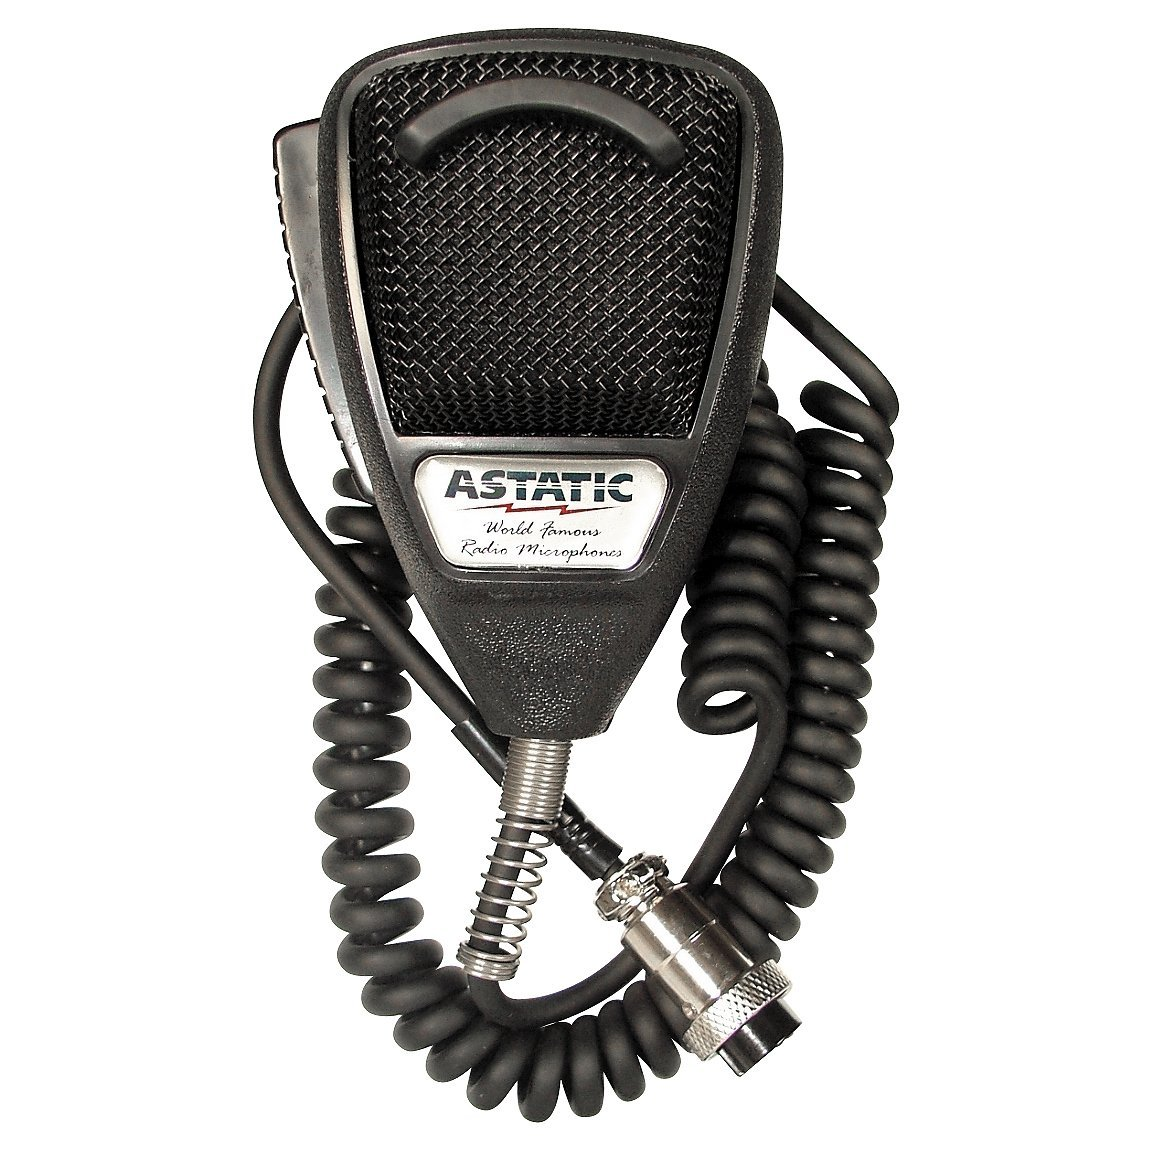 Astatic 636L Noise Cancelling CB Microphone Refurbished